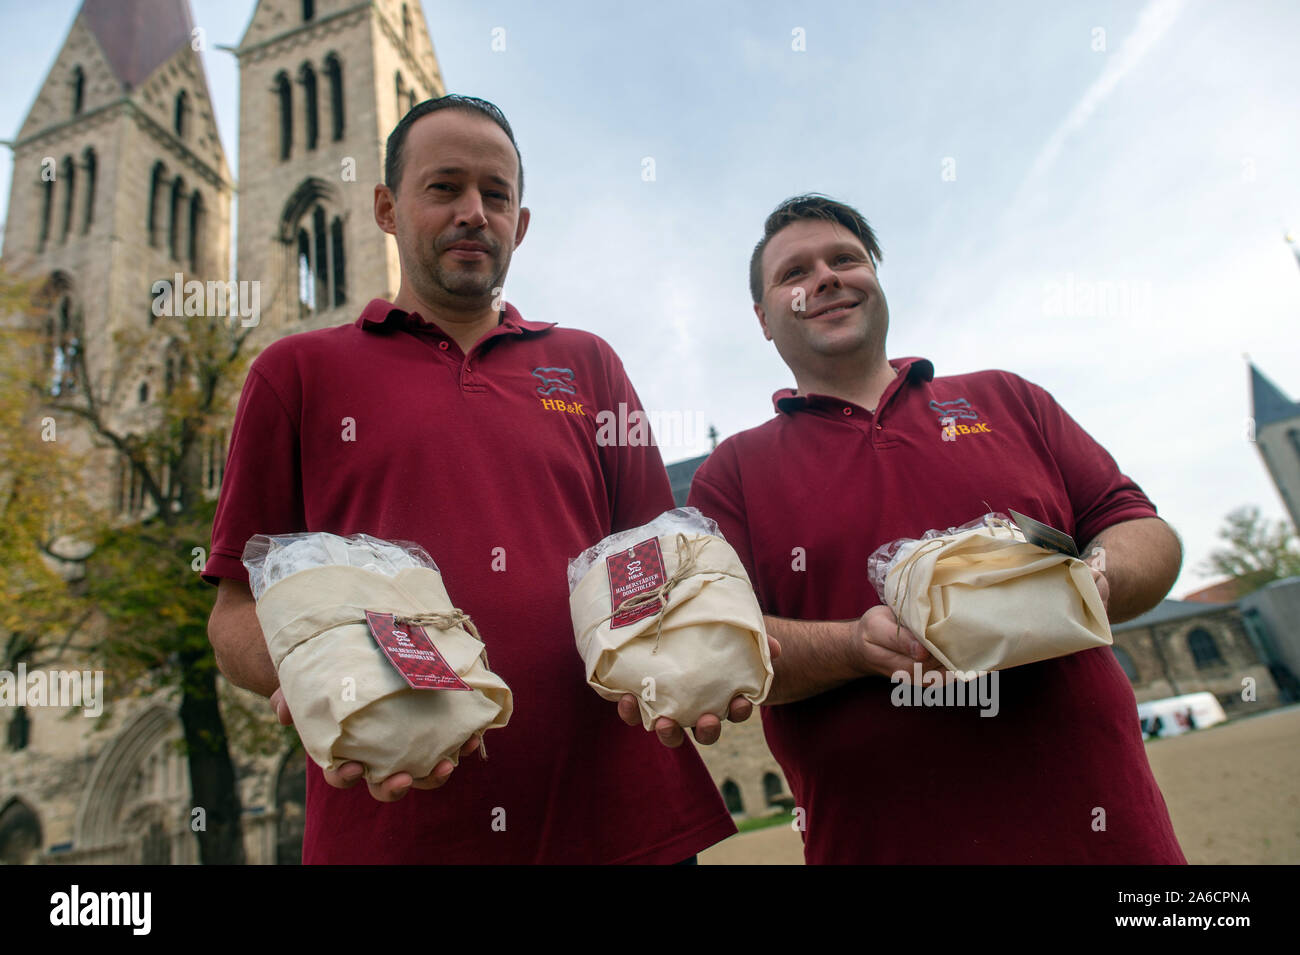 24 October 2019, Saxony-Anhalt, Halberstadt: Peter Potratz (r.) and Mathias Hlady (l.), bakers at the Halberstädter Bäcker and confectioners stand with freshly baked Stollen in front of the cathedral. The bread-like cake covered with icing sugar is to be stored in the Remter cellar of the cathedral in the coming weeks and matured in the constant climate of the vault. The Halberstadt cathedral gallery will be cut on 30 November 2019 in the cathedral during a devotion. Photo: Klaus-Dietmar Gabbert/dpa-Zentralbild/ZB Stock Photo